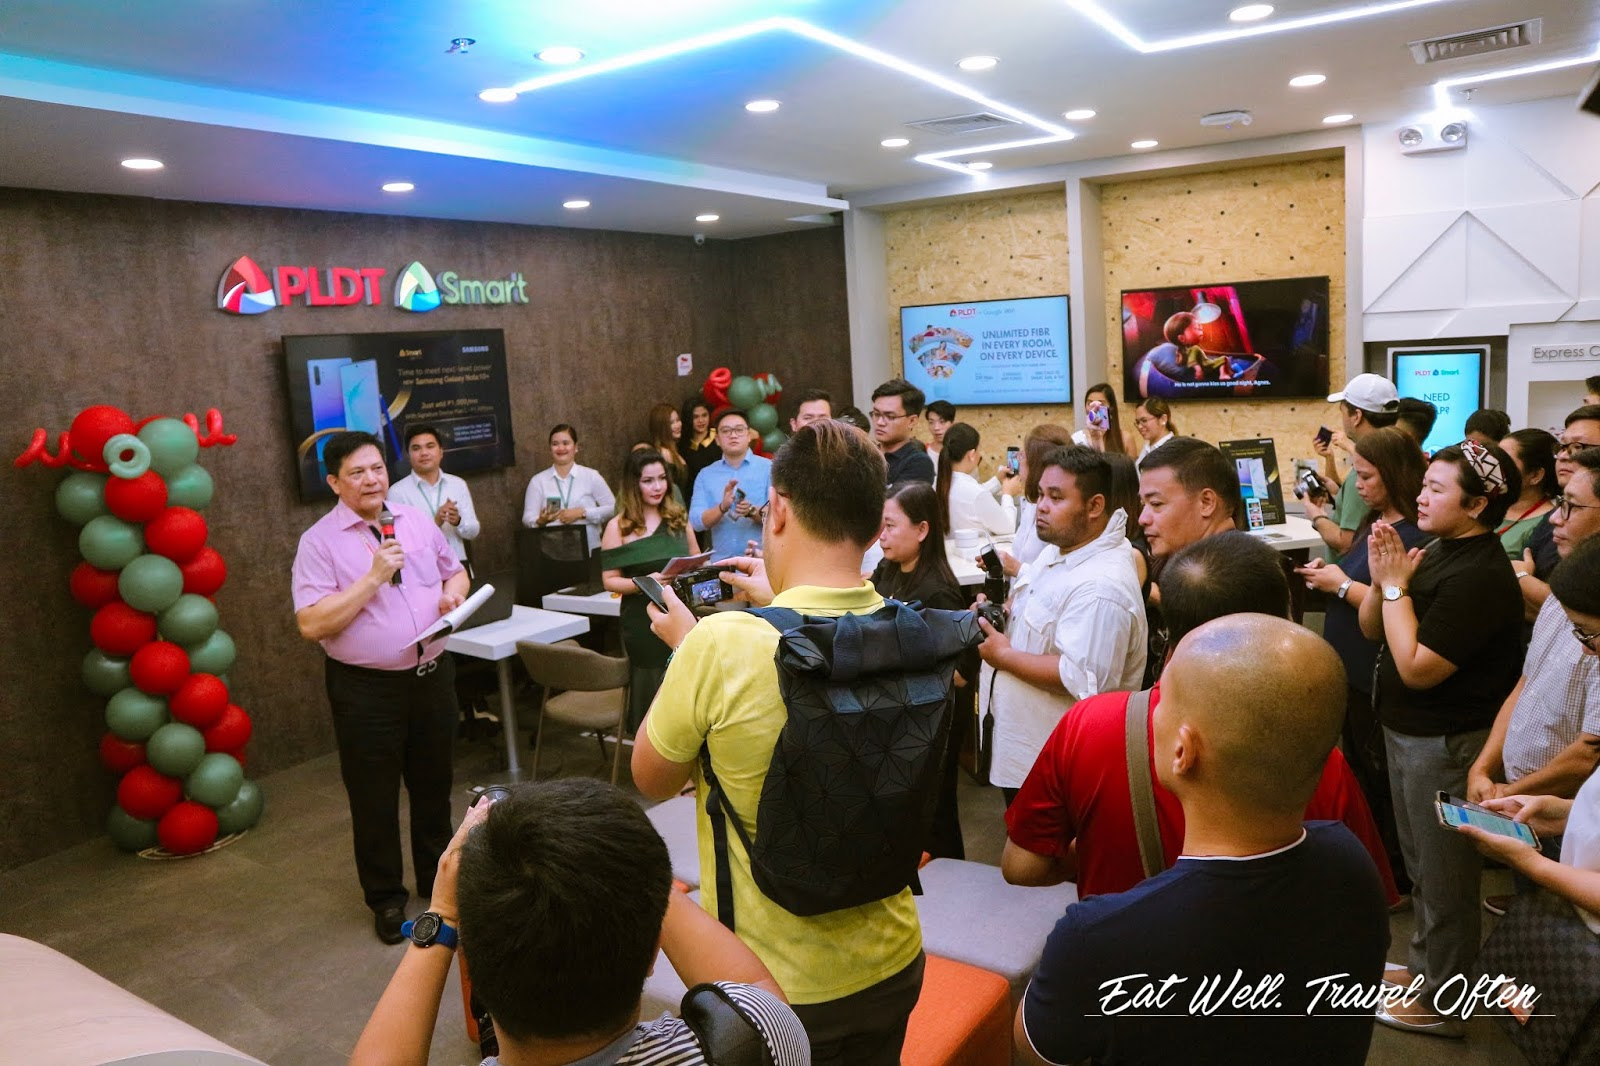 PLDT SMART Convergence Store in Davao